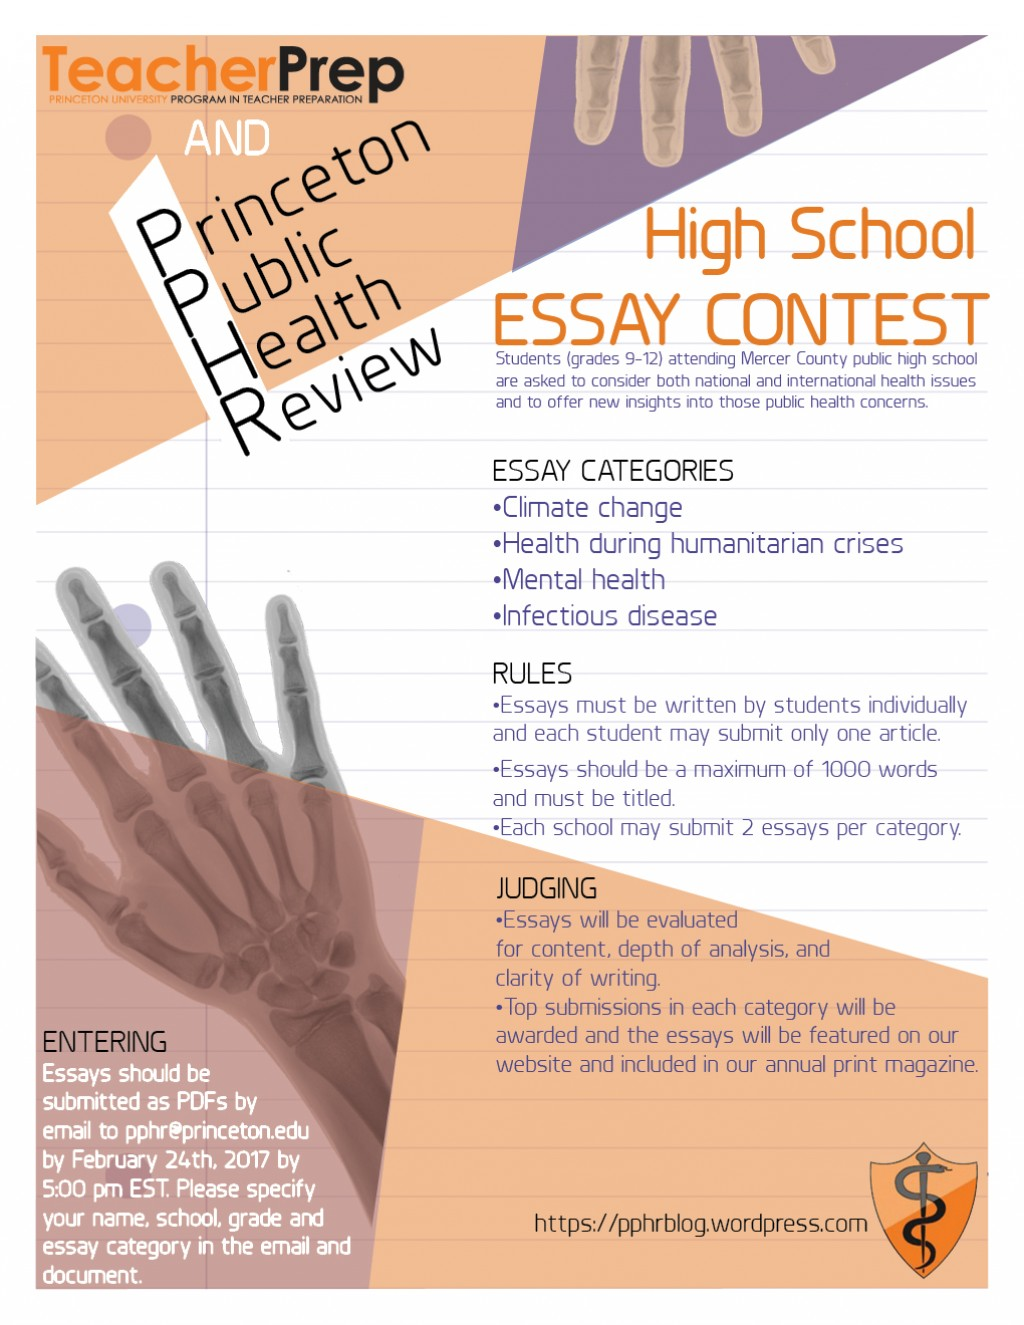 008 High School Essay Contests Pphressaycontestfeb24 Fascinating Contest Winners 2019 For Scholarships Large